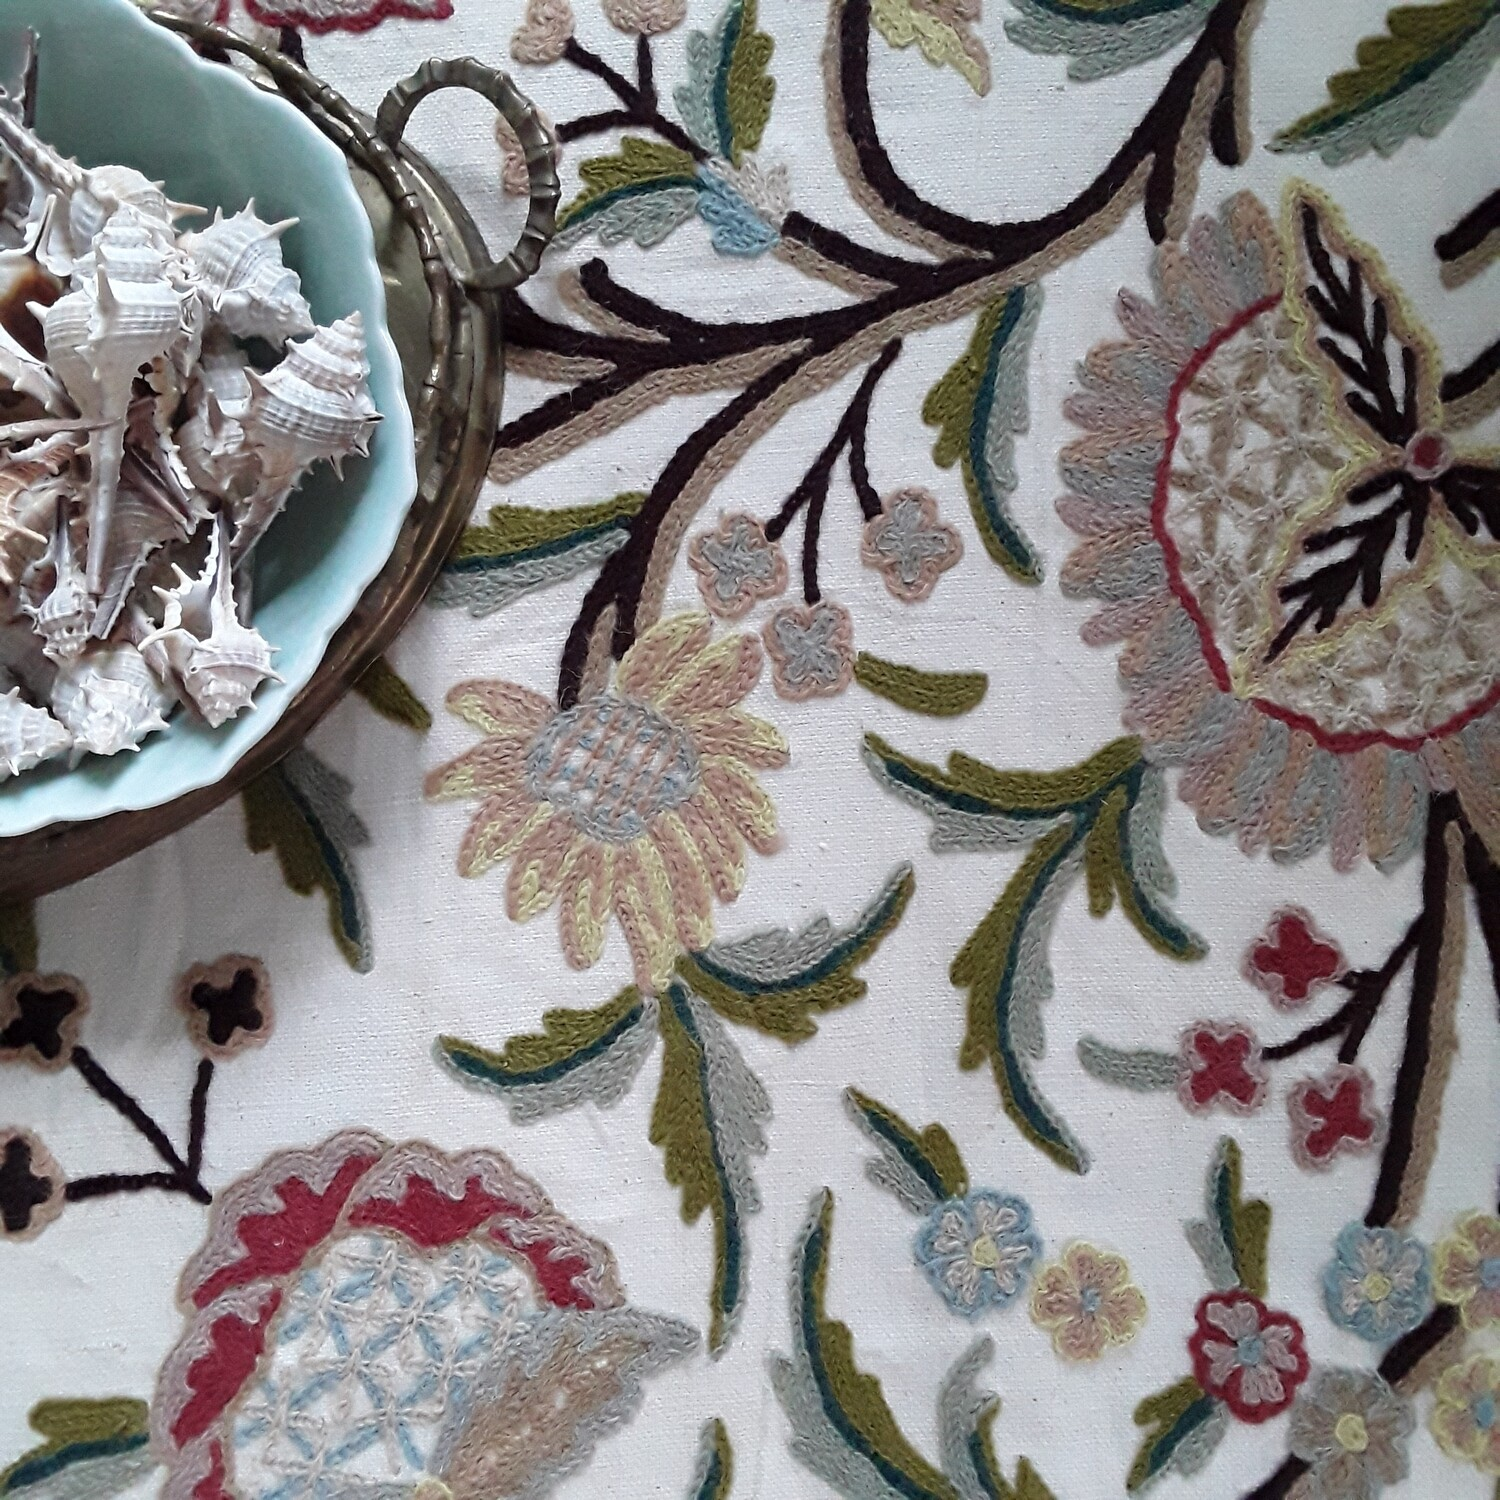 Vintage Crewel Embroidered Fabric Remnant